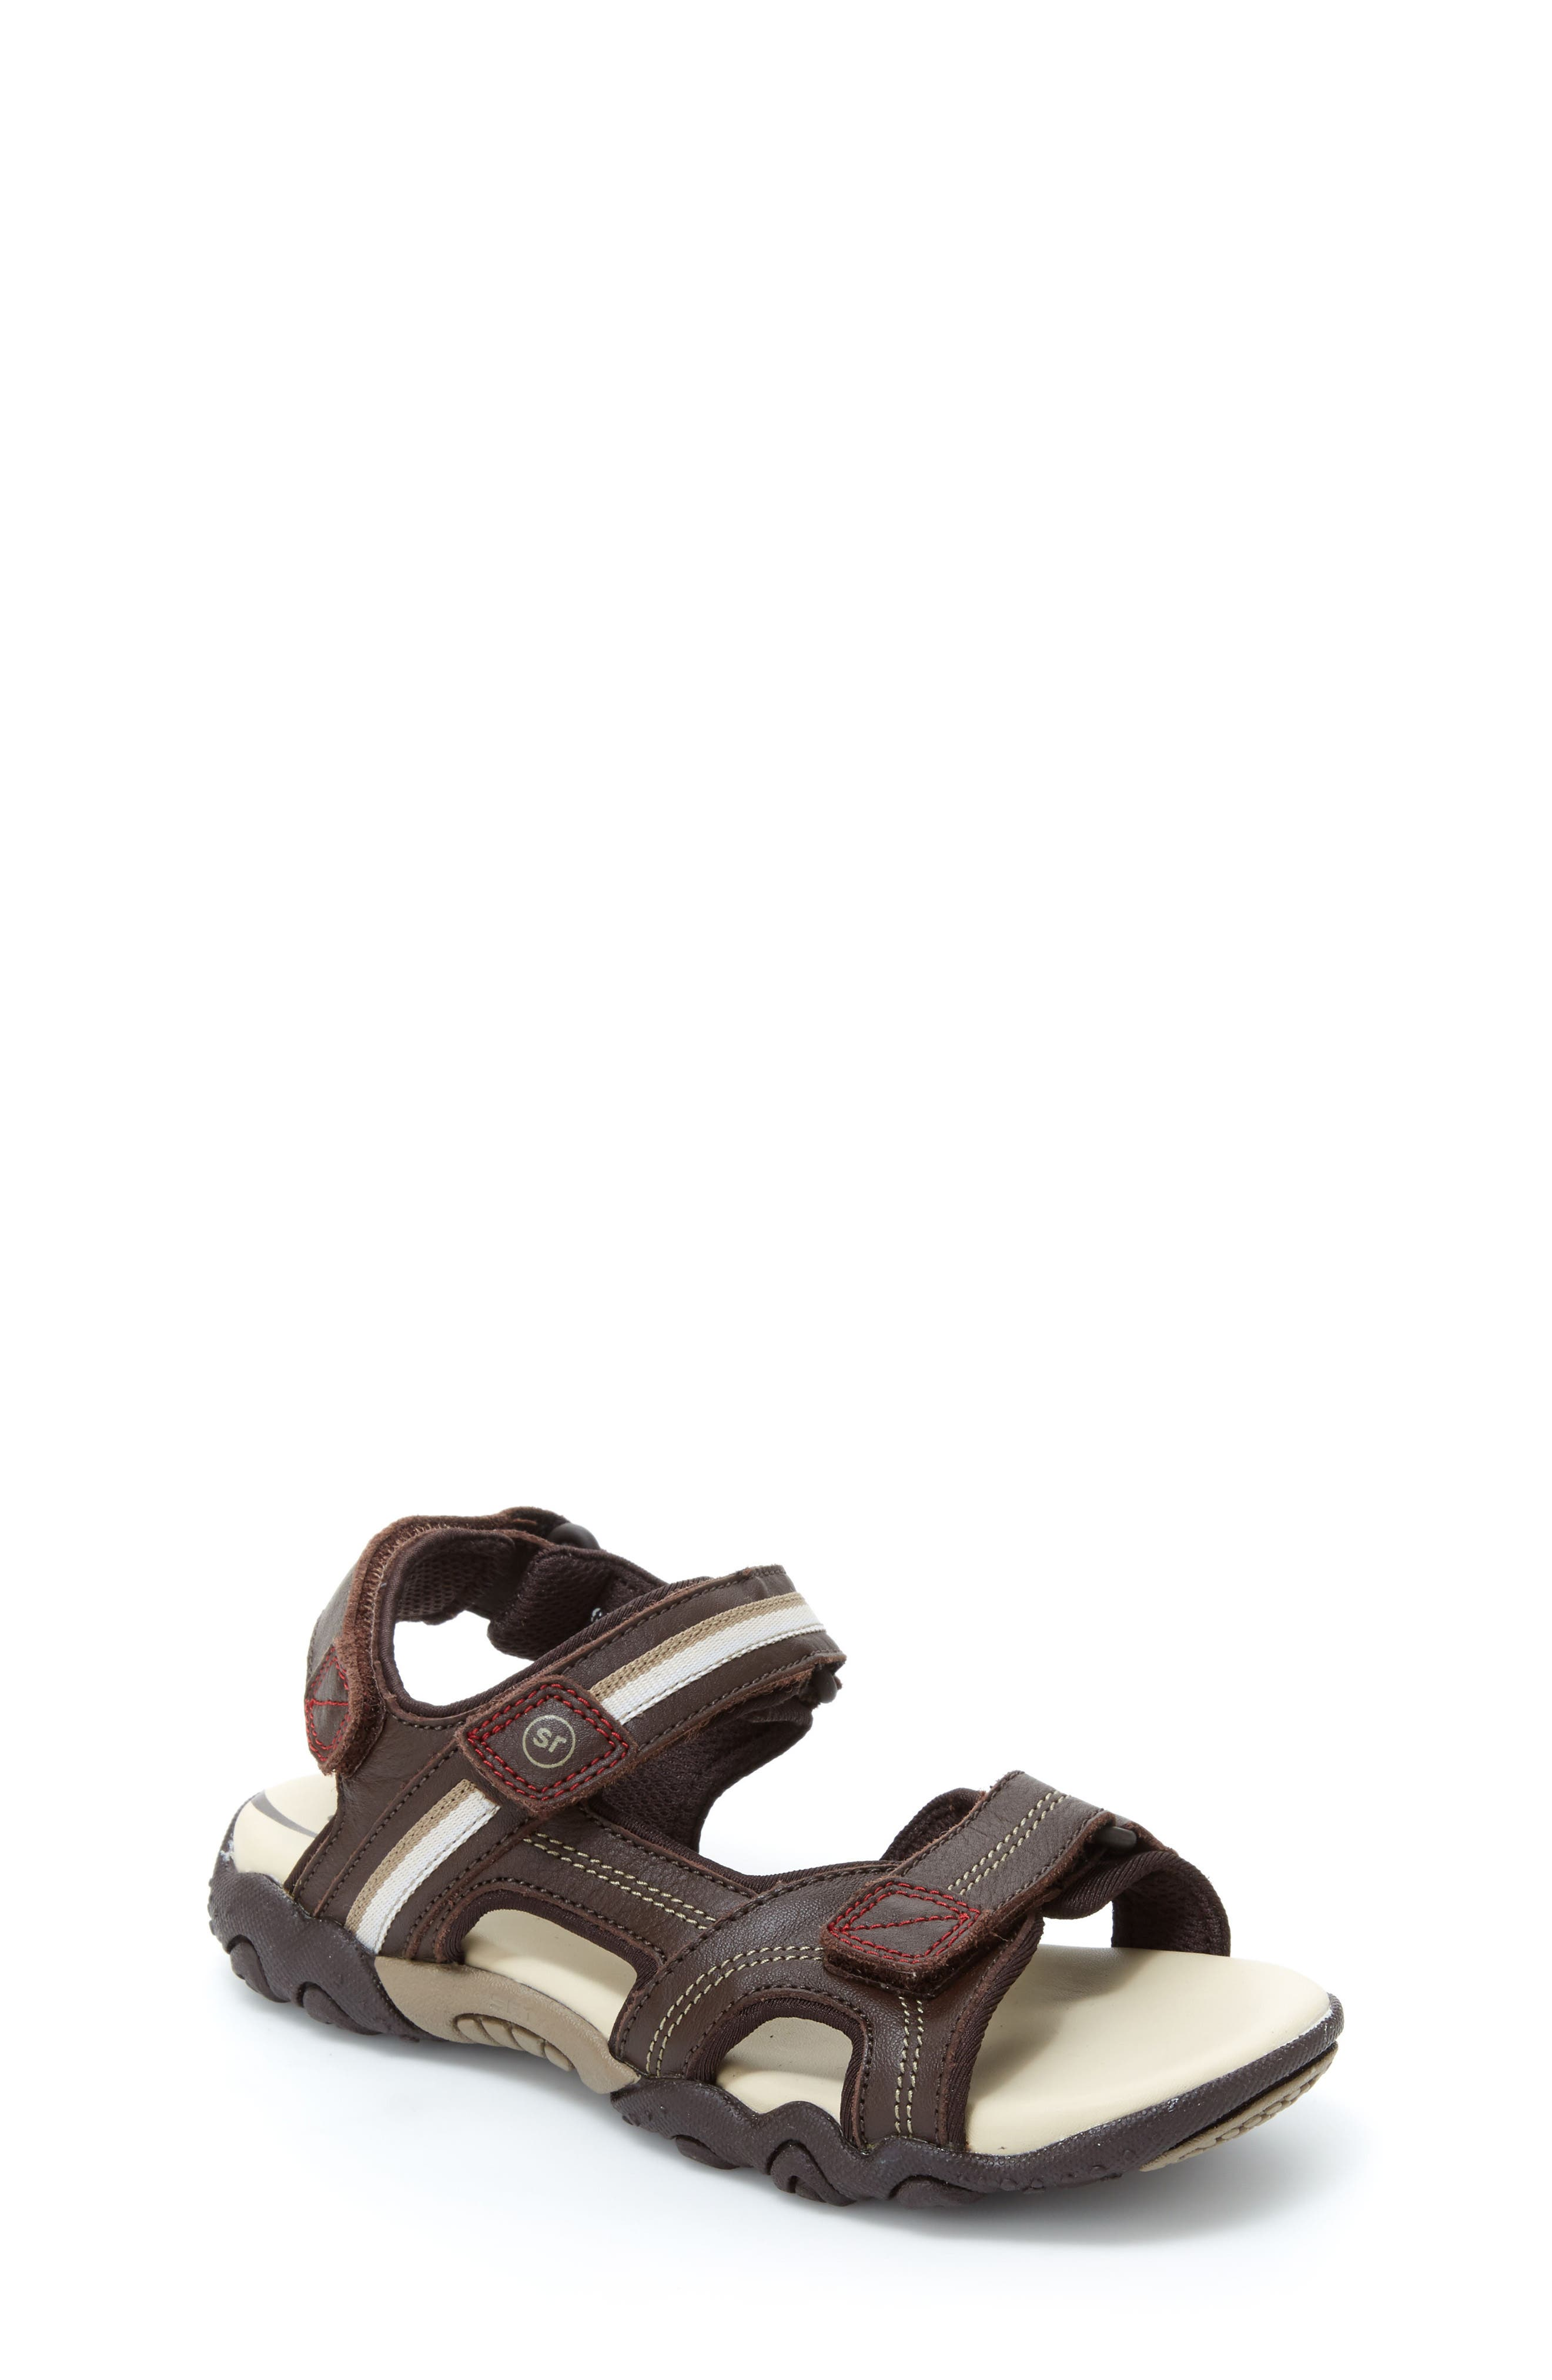 Garth Active Sandal,                         Main,                         color,